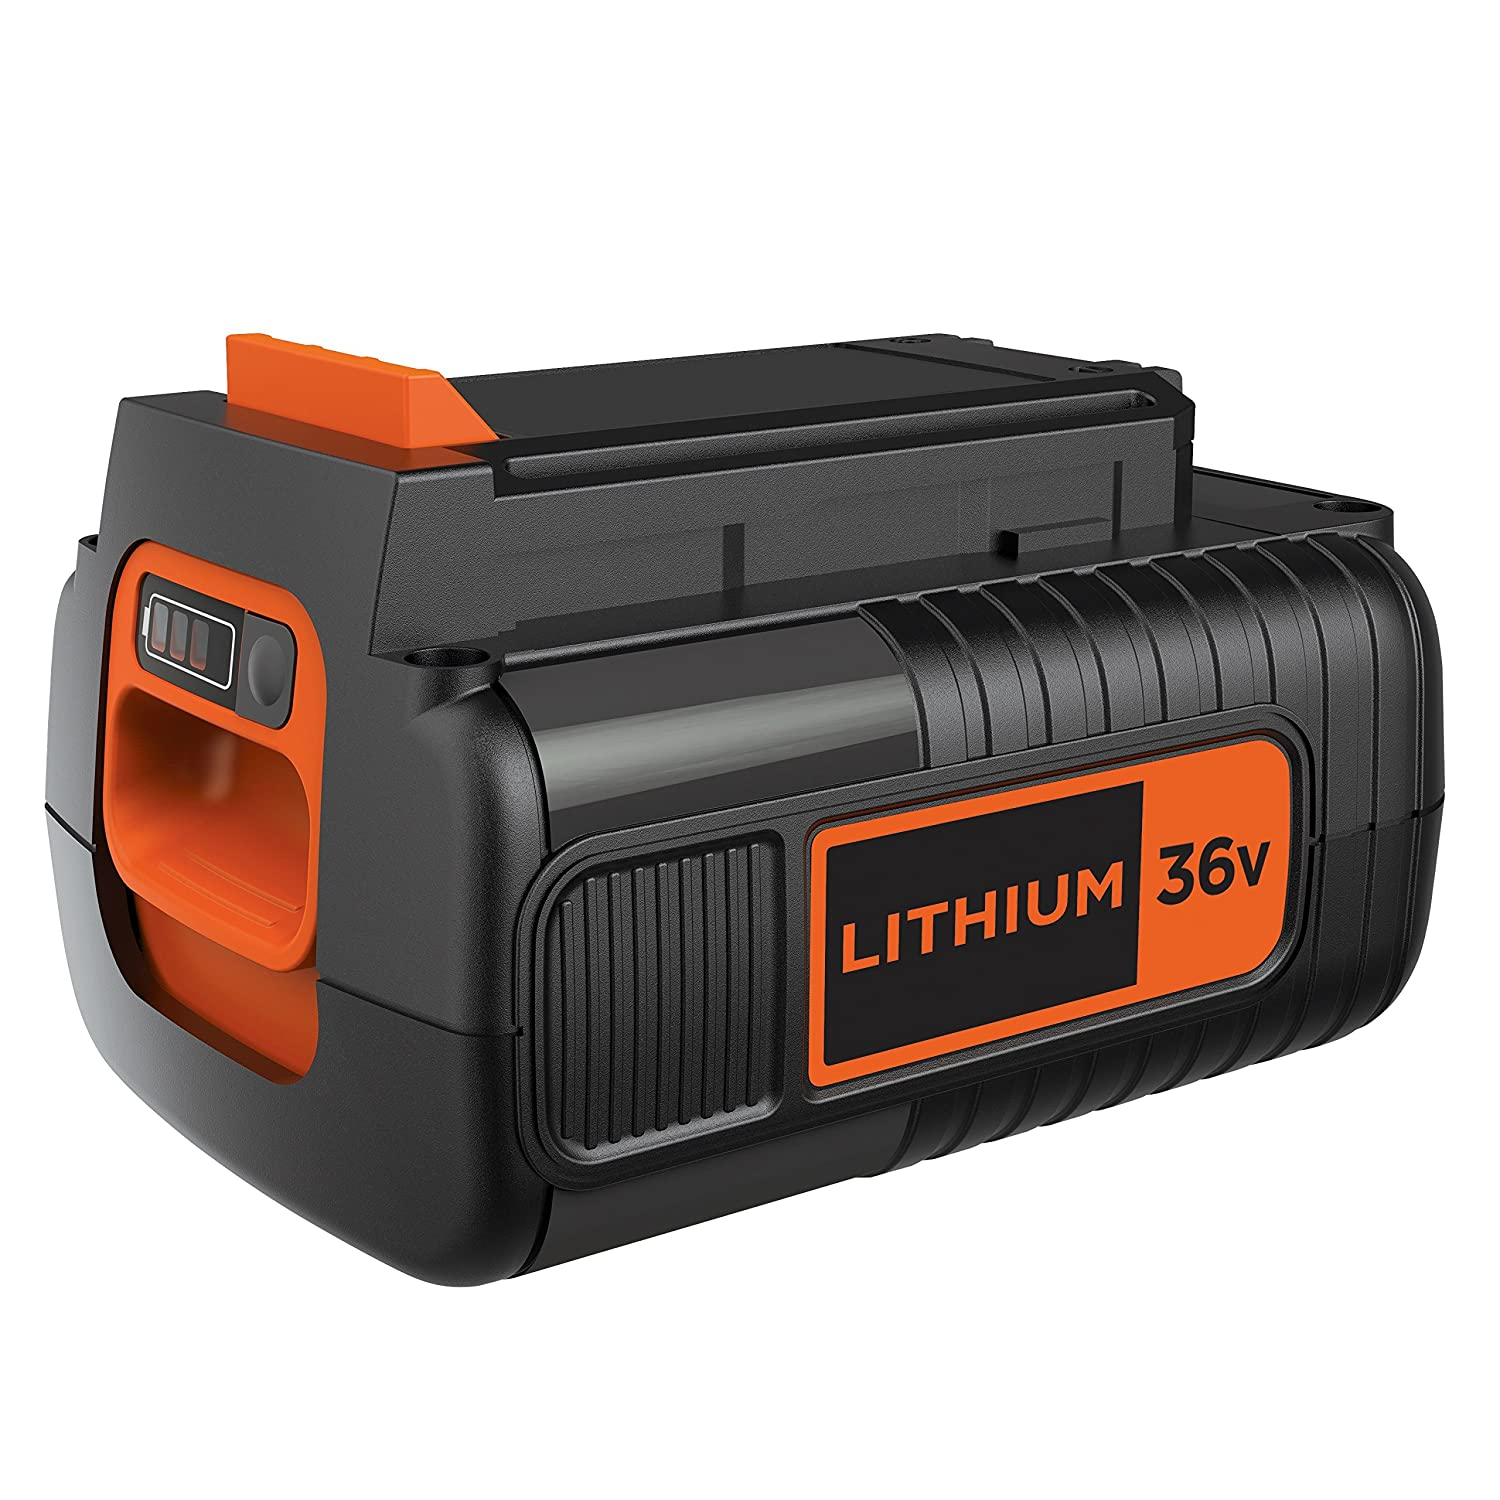 Black + Decker 36 V, 2.0 Ah Lithium Ion Spare/Supplement Products battery compatible, 36 V, BL20362 BLACK+DECKER BL20362-XJ